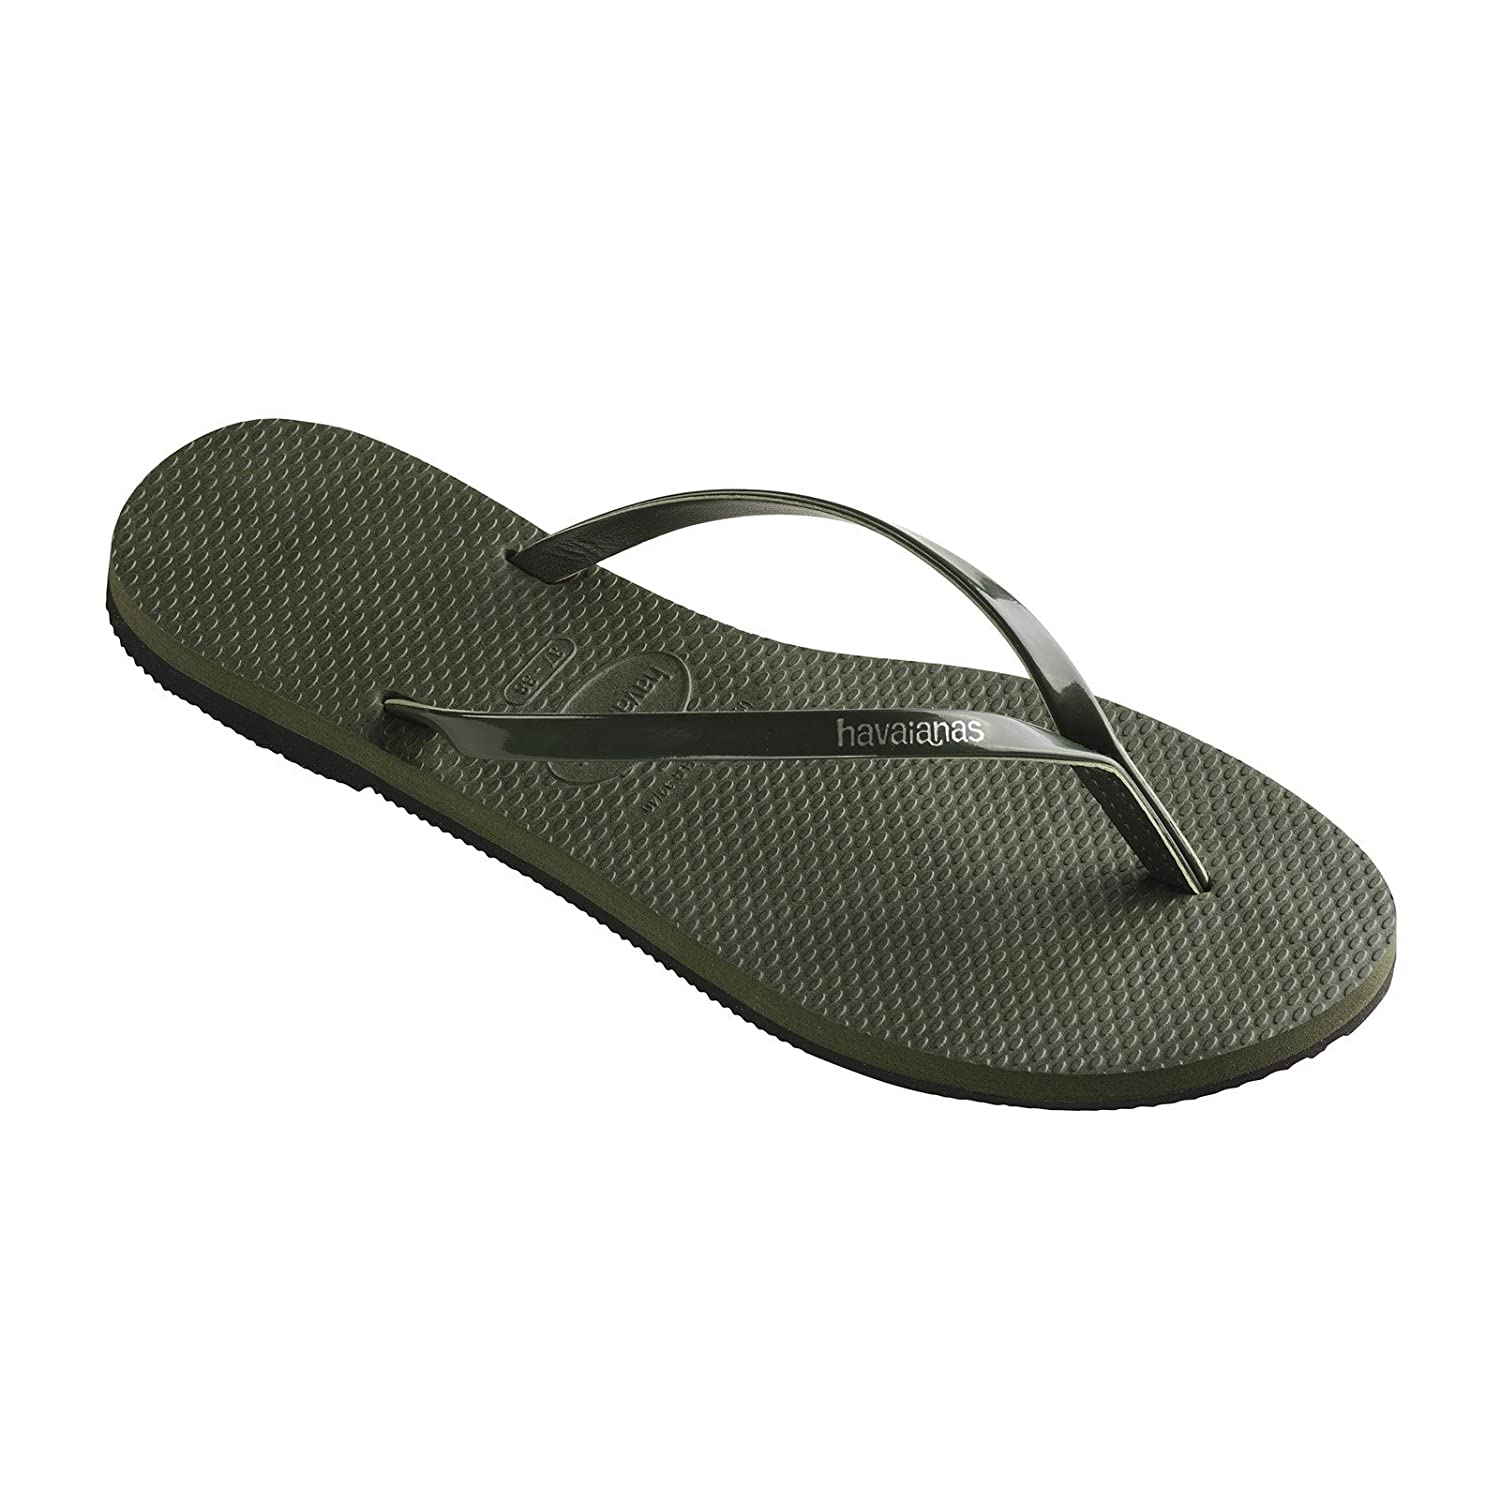 Havaianas You Metallic Olive Green Flip Flops: Amazon.co.uk: Shoes & Bags